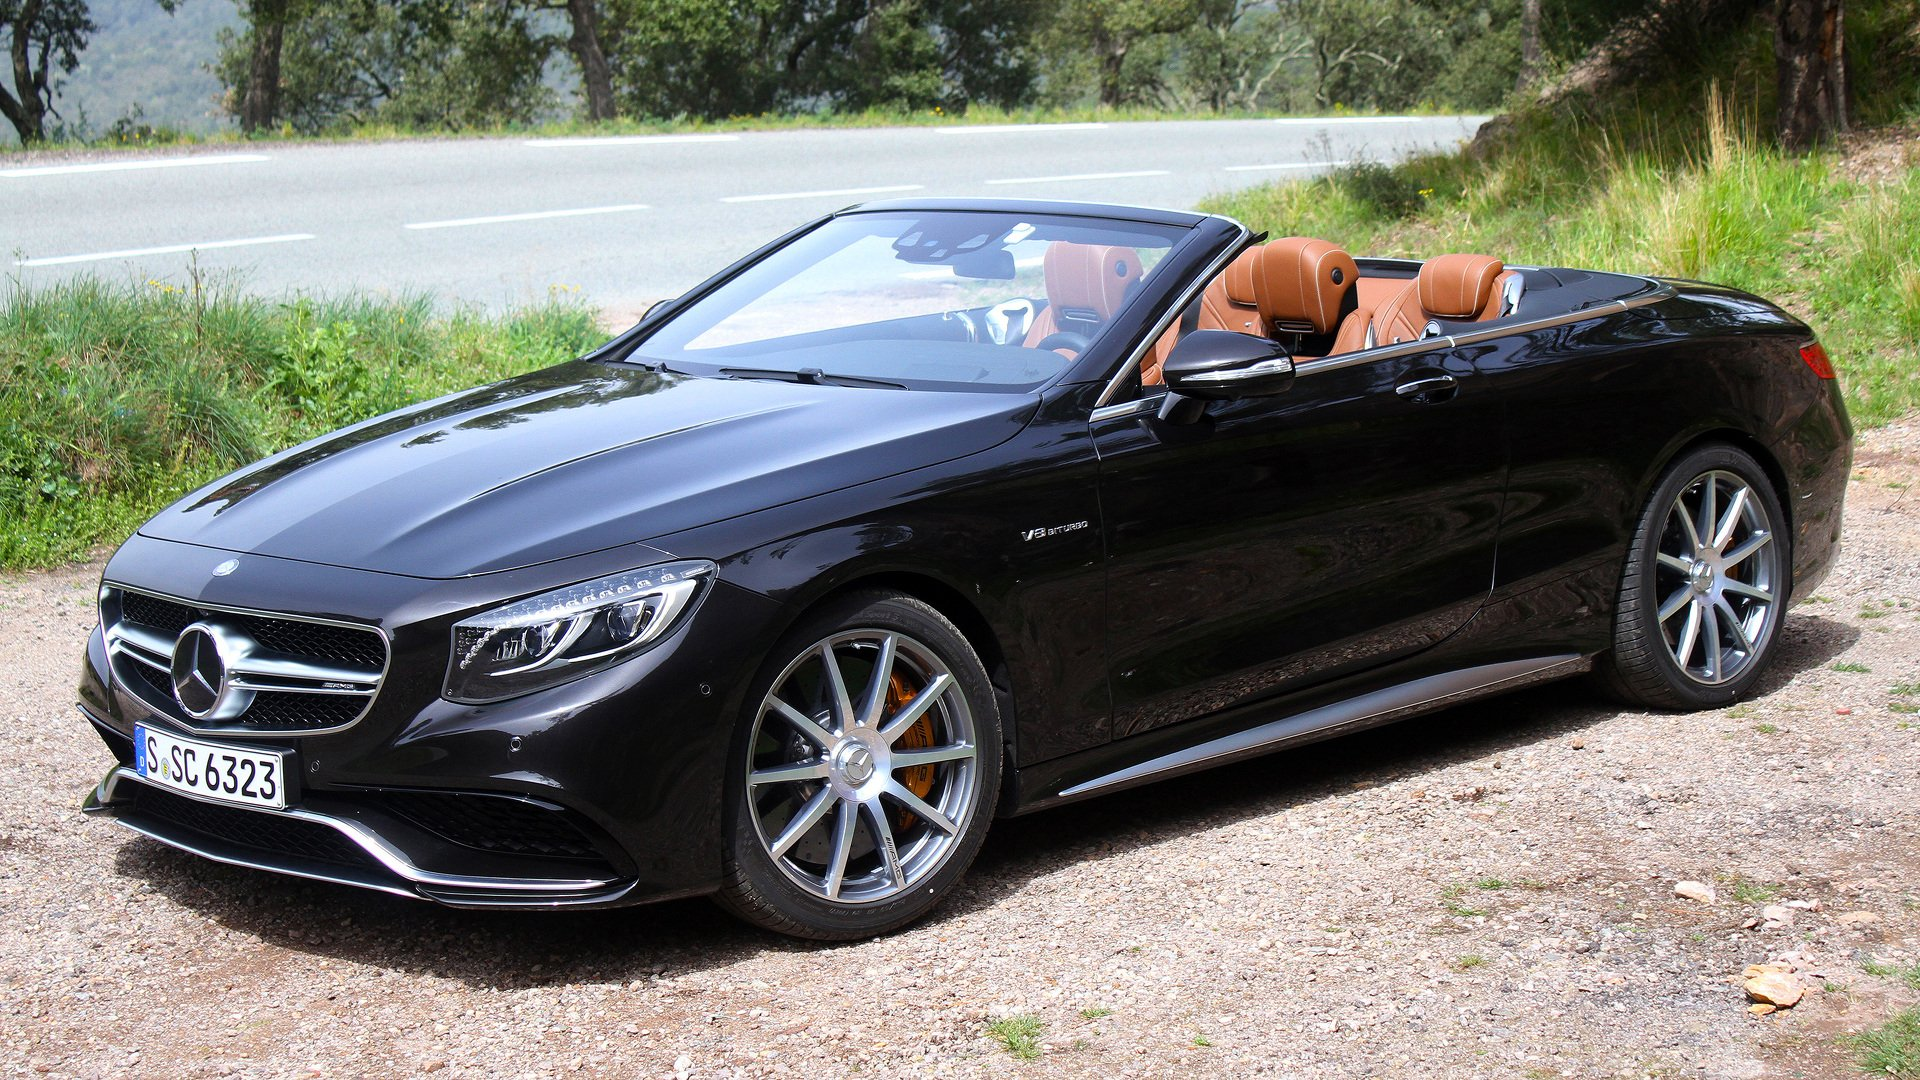 mercedes amg s63 cabriolet cars 2016 wallpaper 1920x1080 927732 wallpaperup. Black Bedroom Furniture Sets. Home Design Ideas